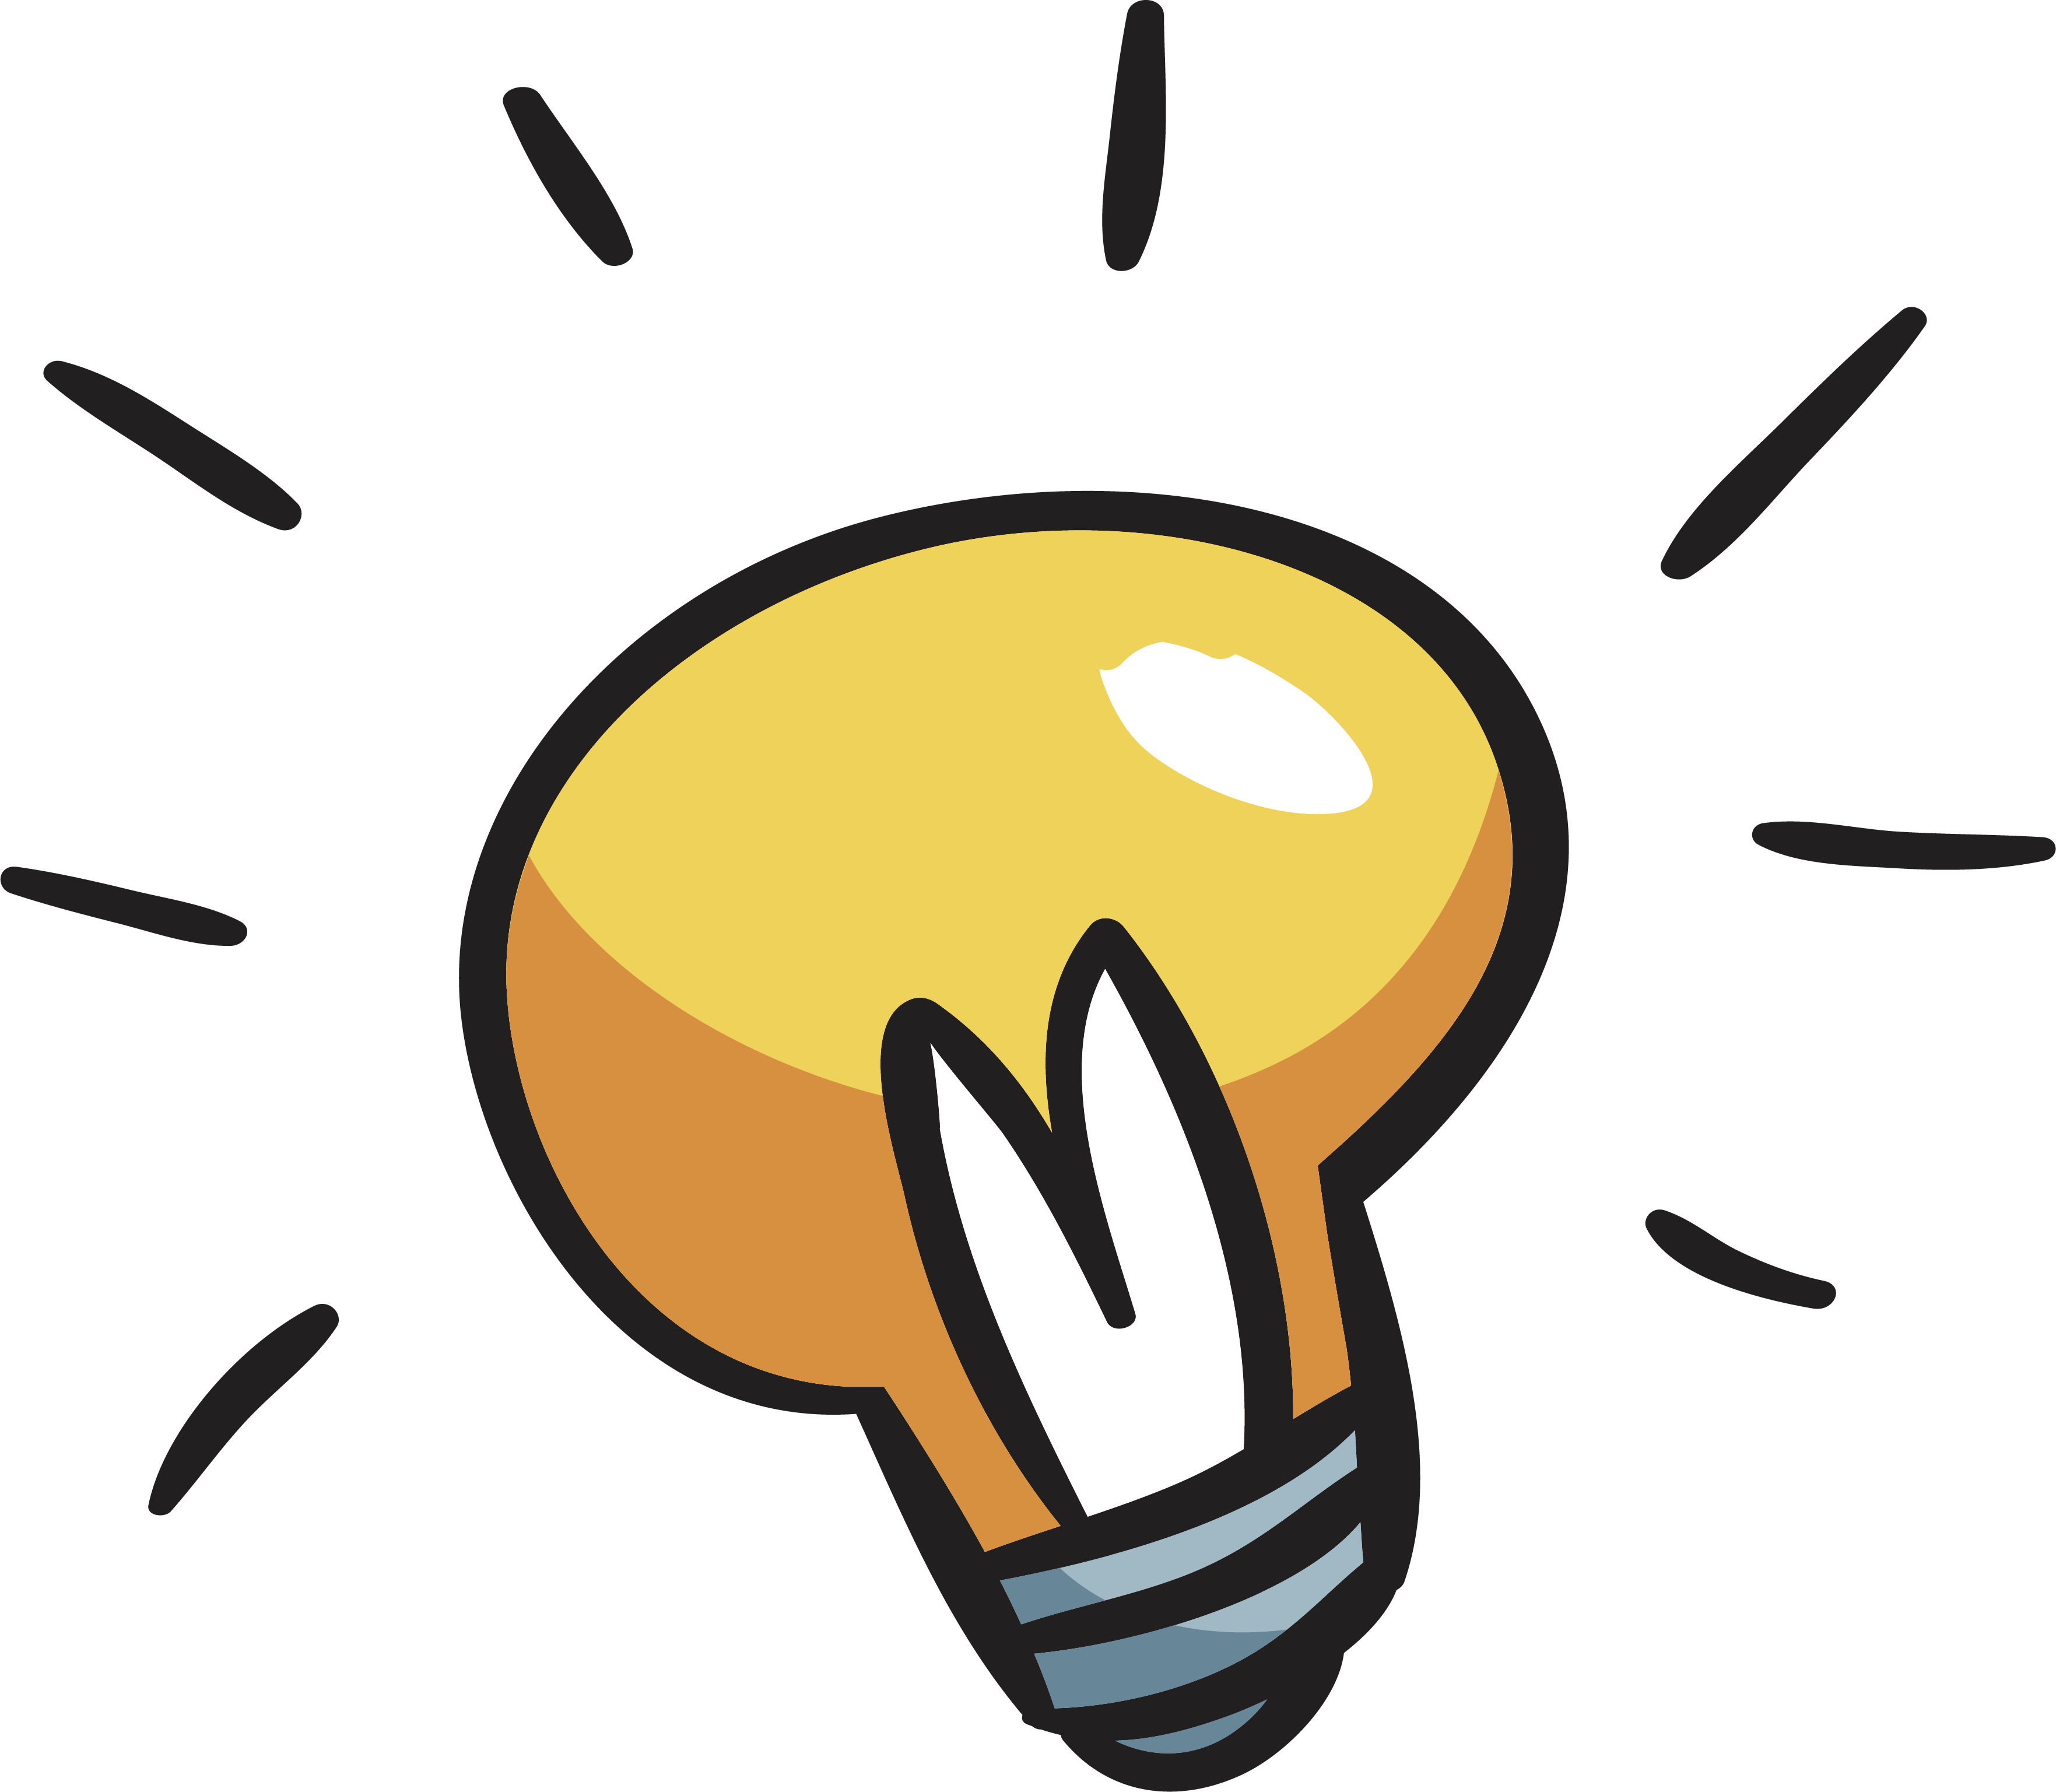 Thinking clipart light bulb, Picture #2126380 thinking clipart ...